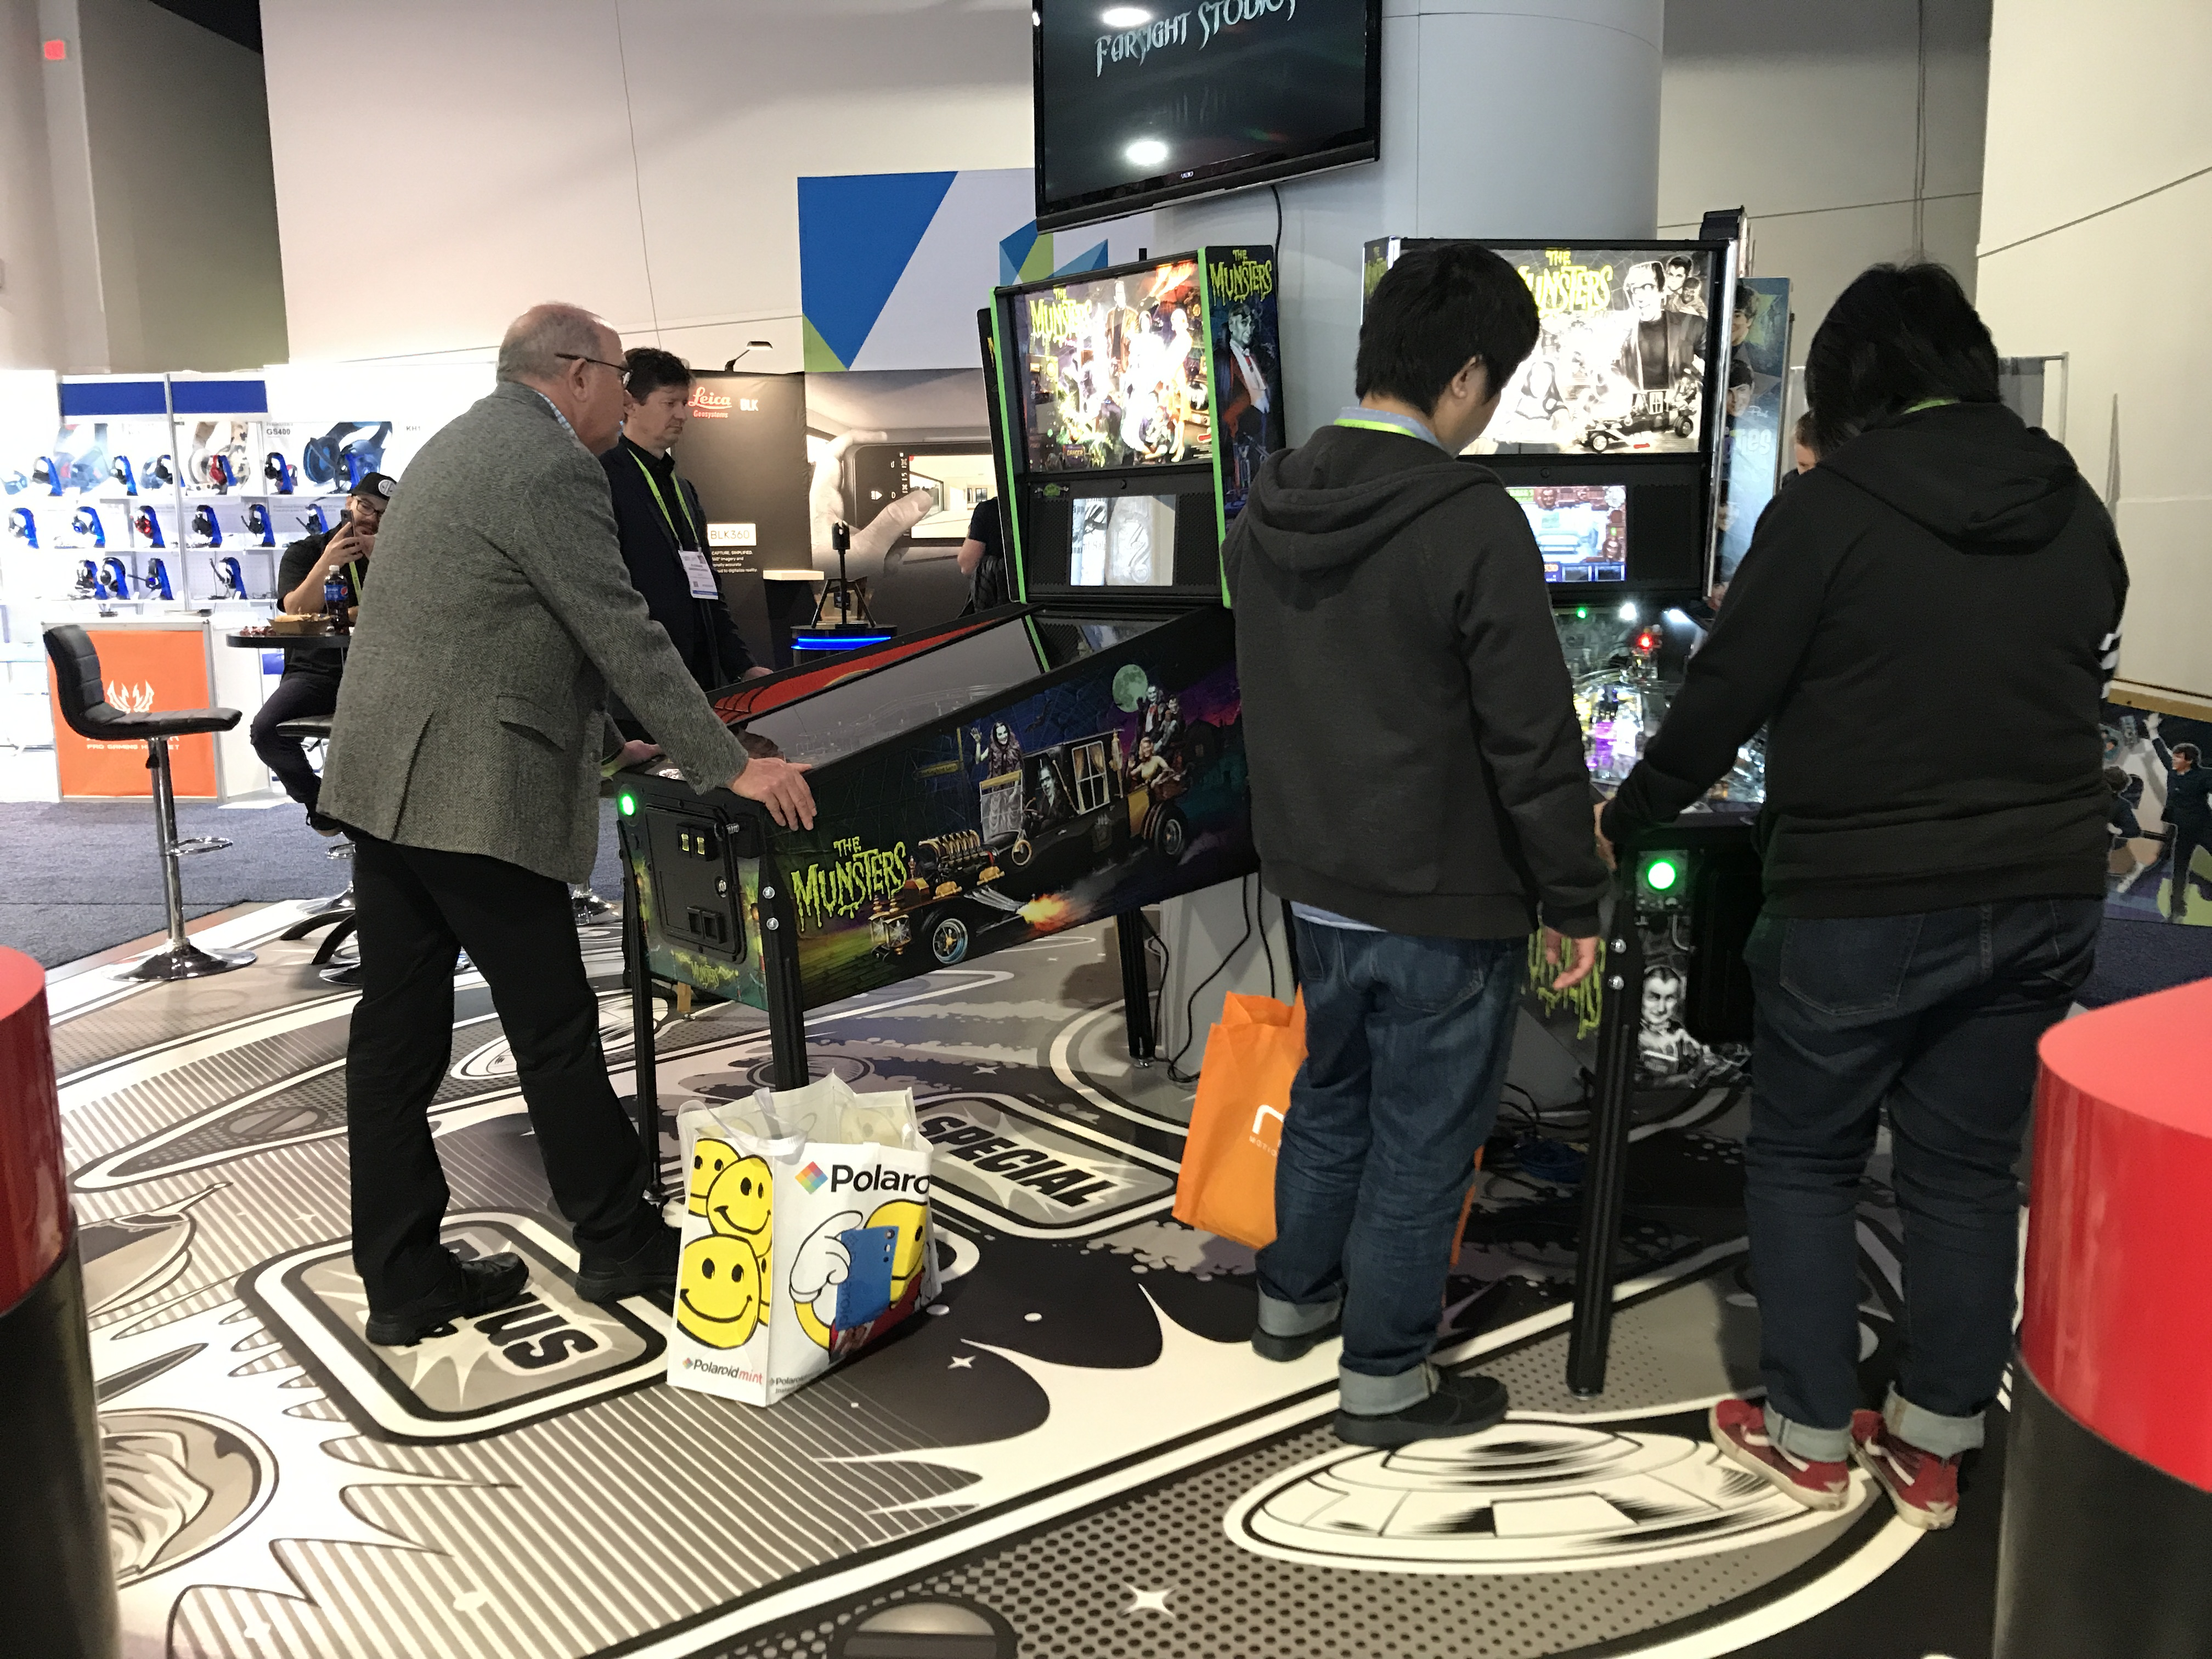 ces attendees playing arcade games